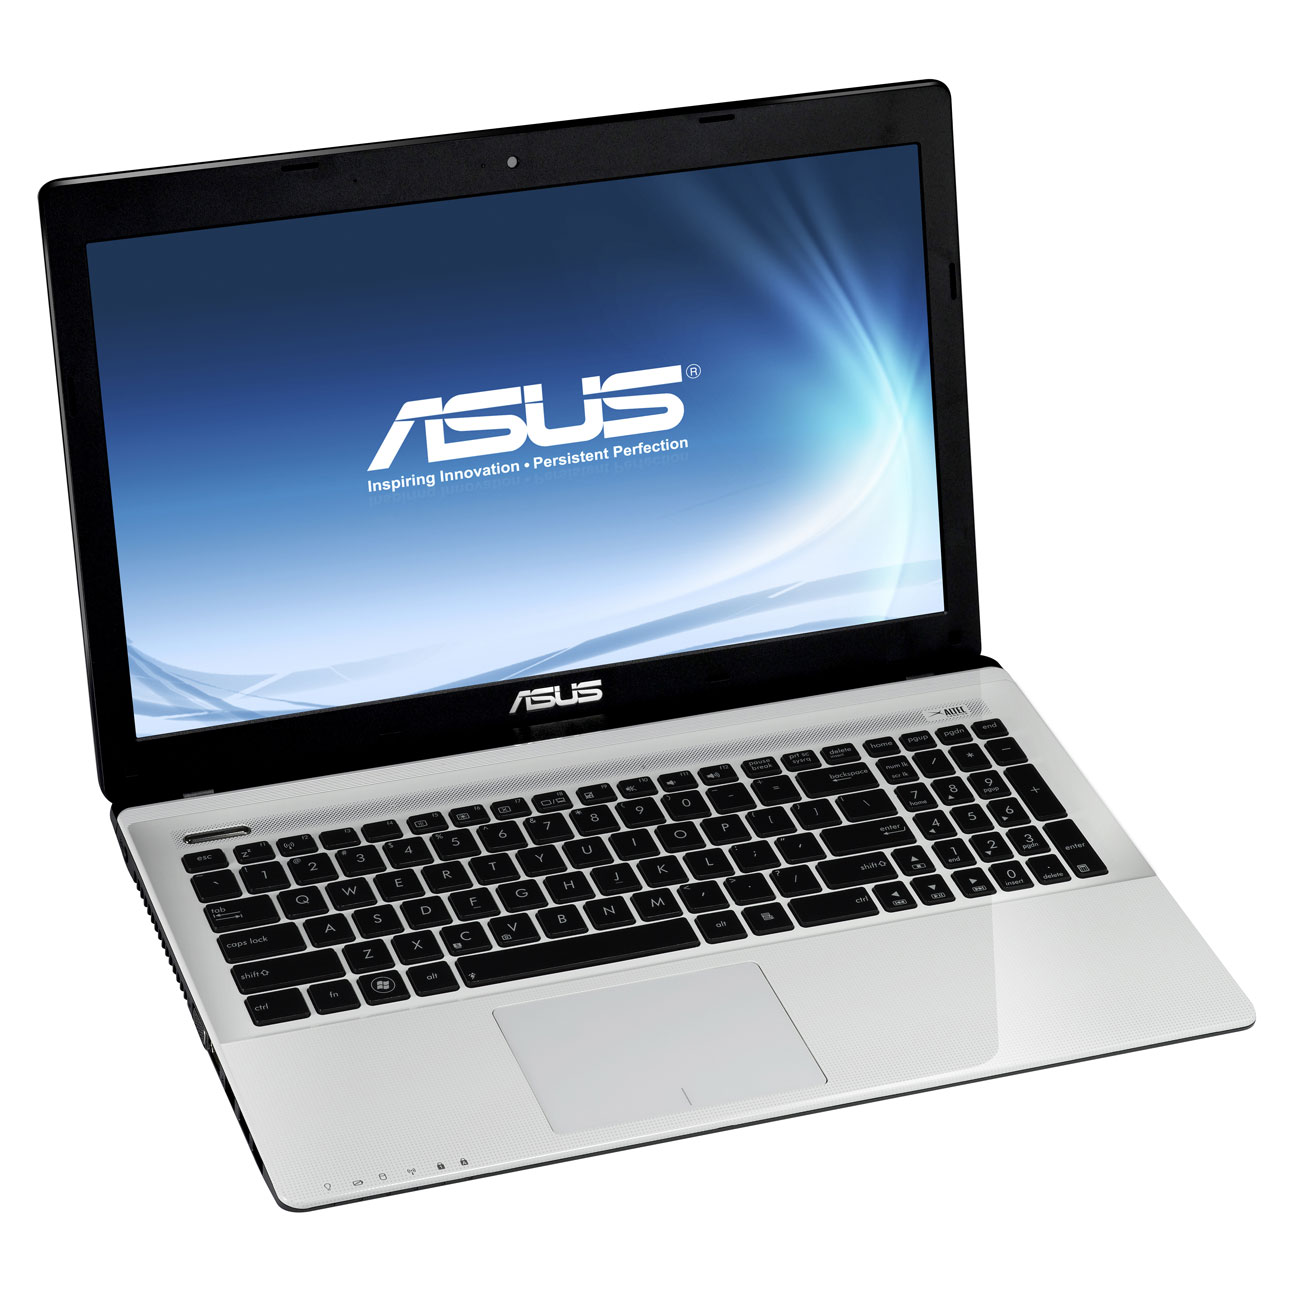 asus k55vd sx614h blanc pc portable asus sur. Black Bedroom Furniture Sets. Home Design Ideas